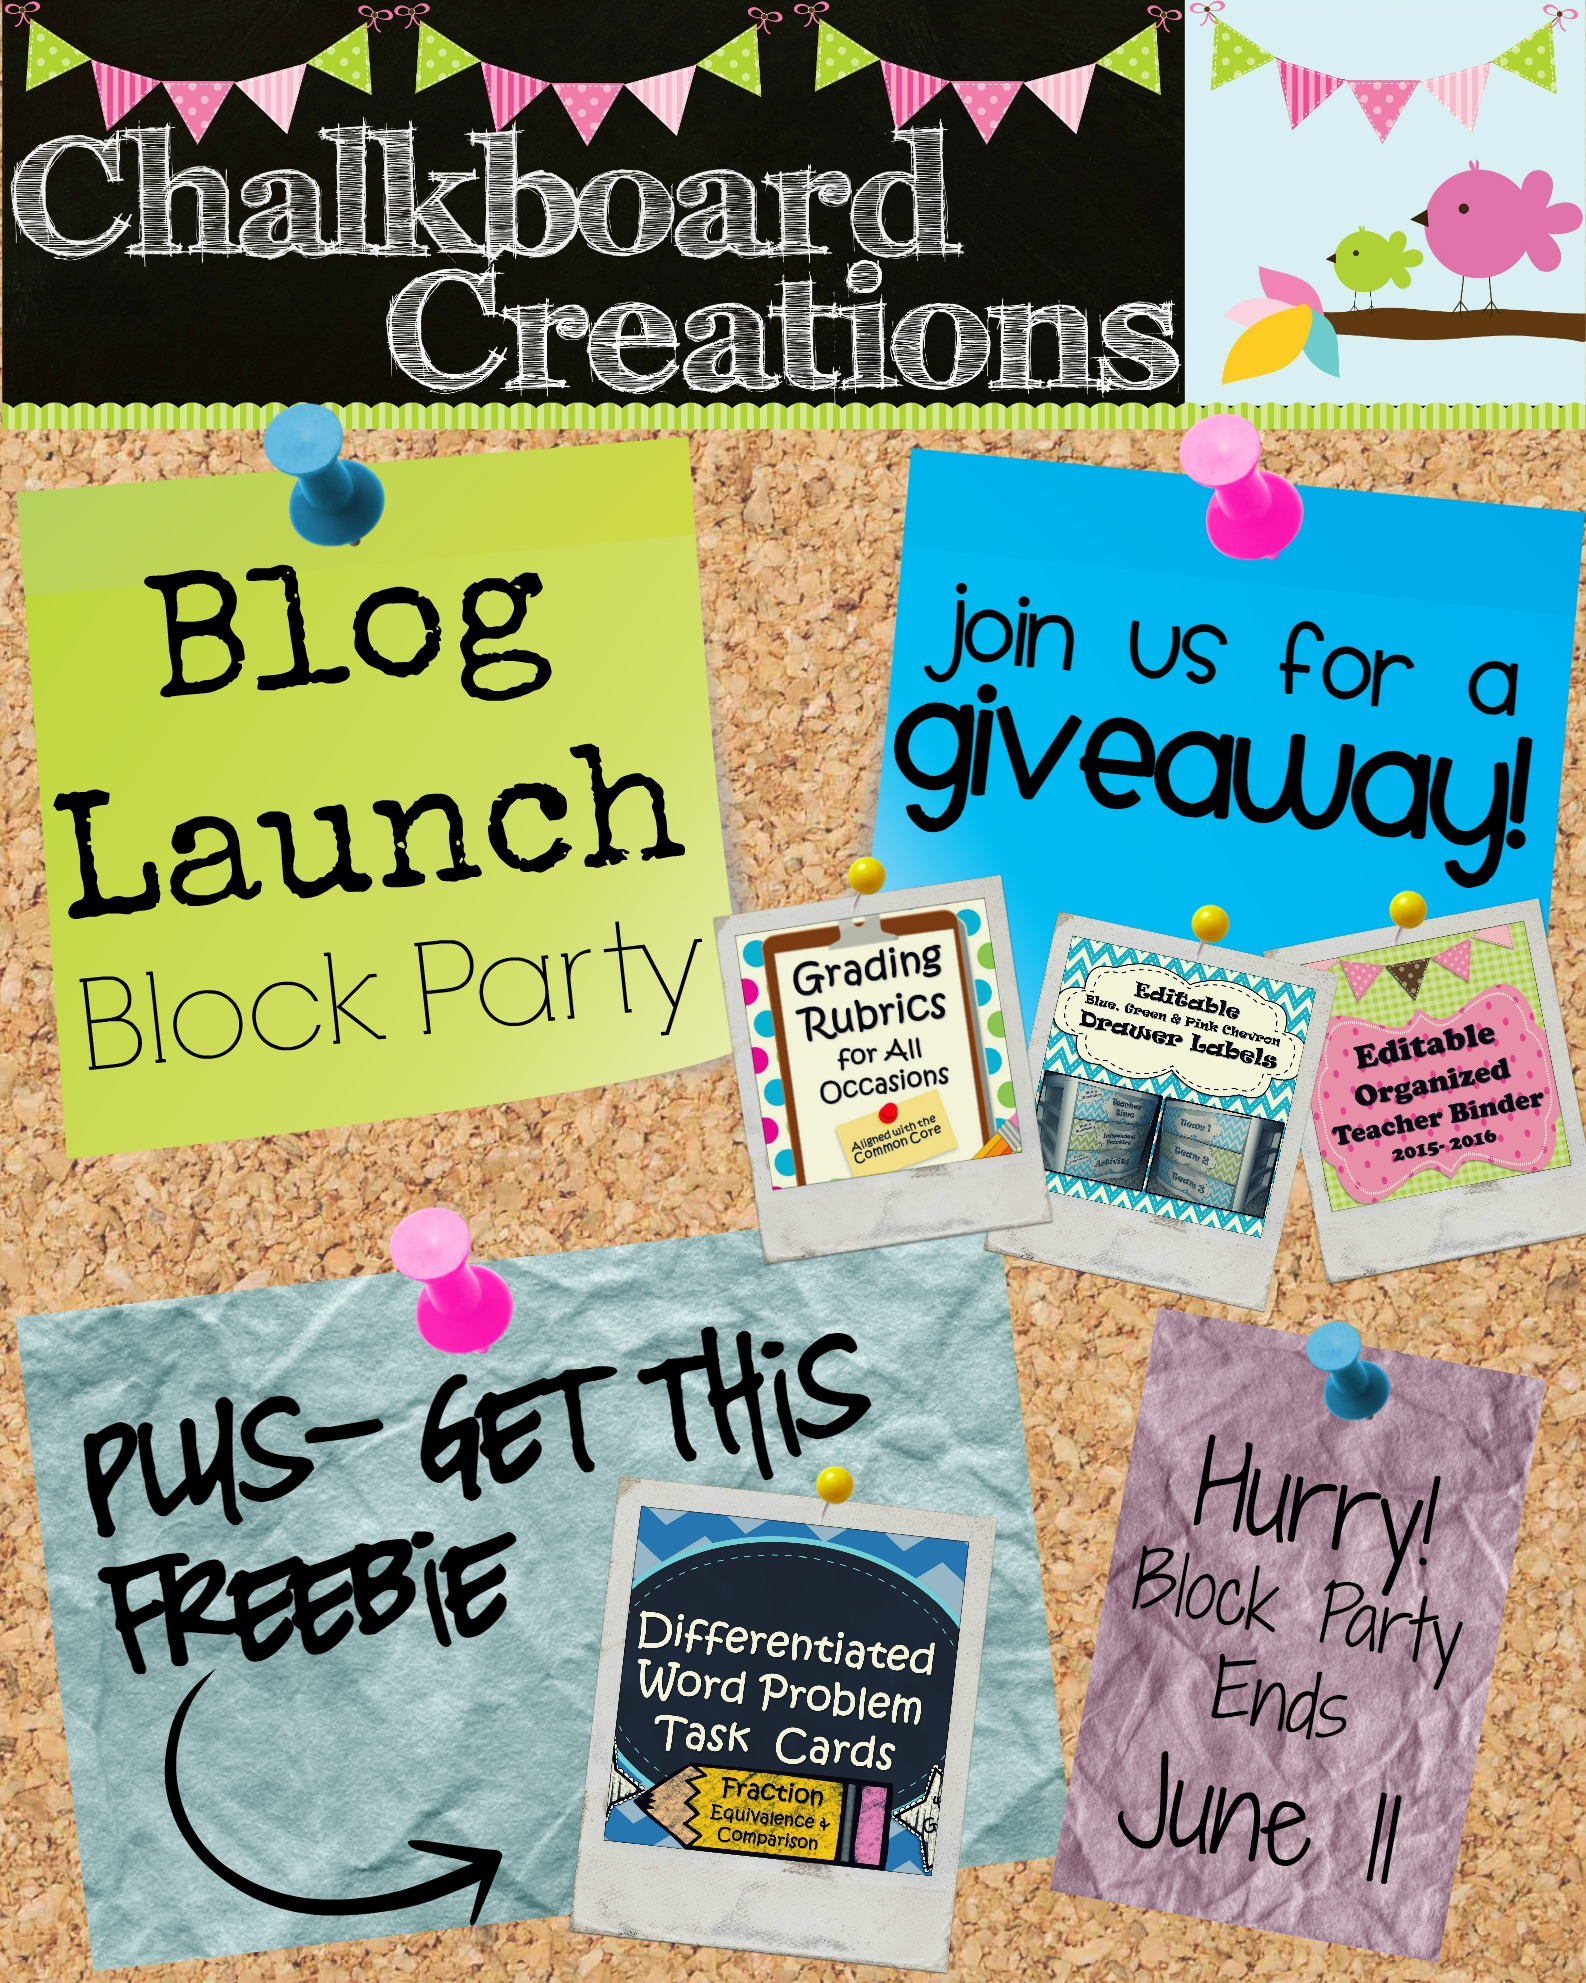 chalkboard Creations blog launch block party